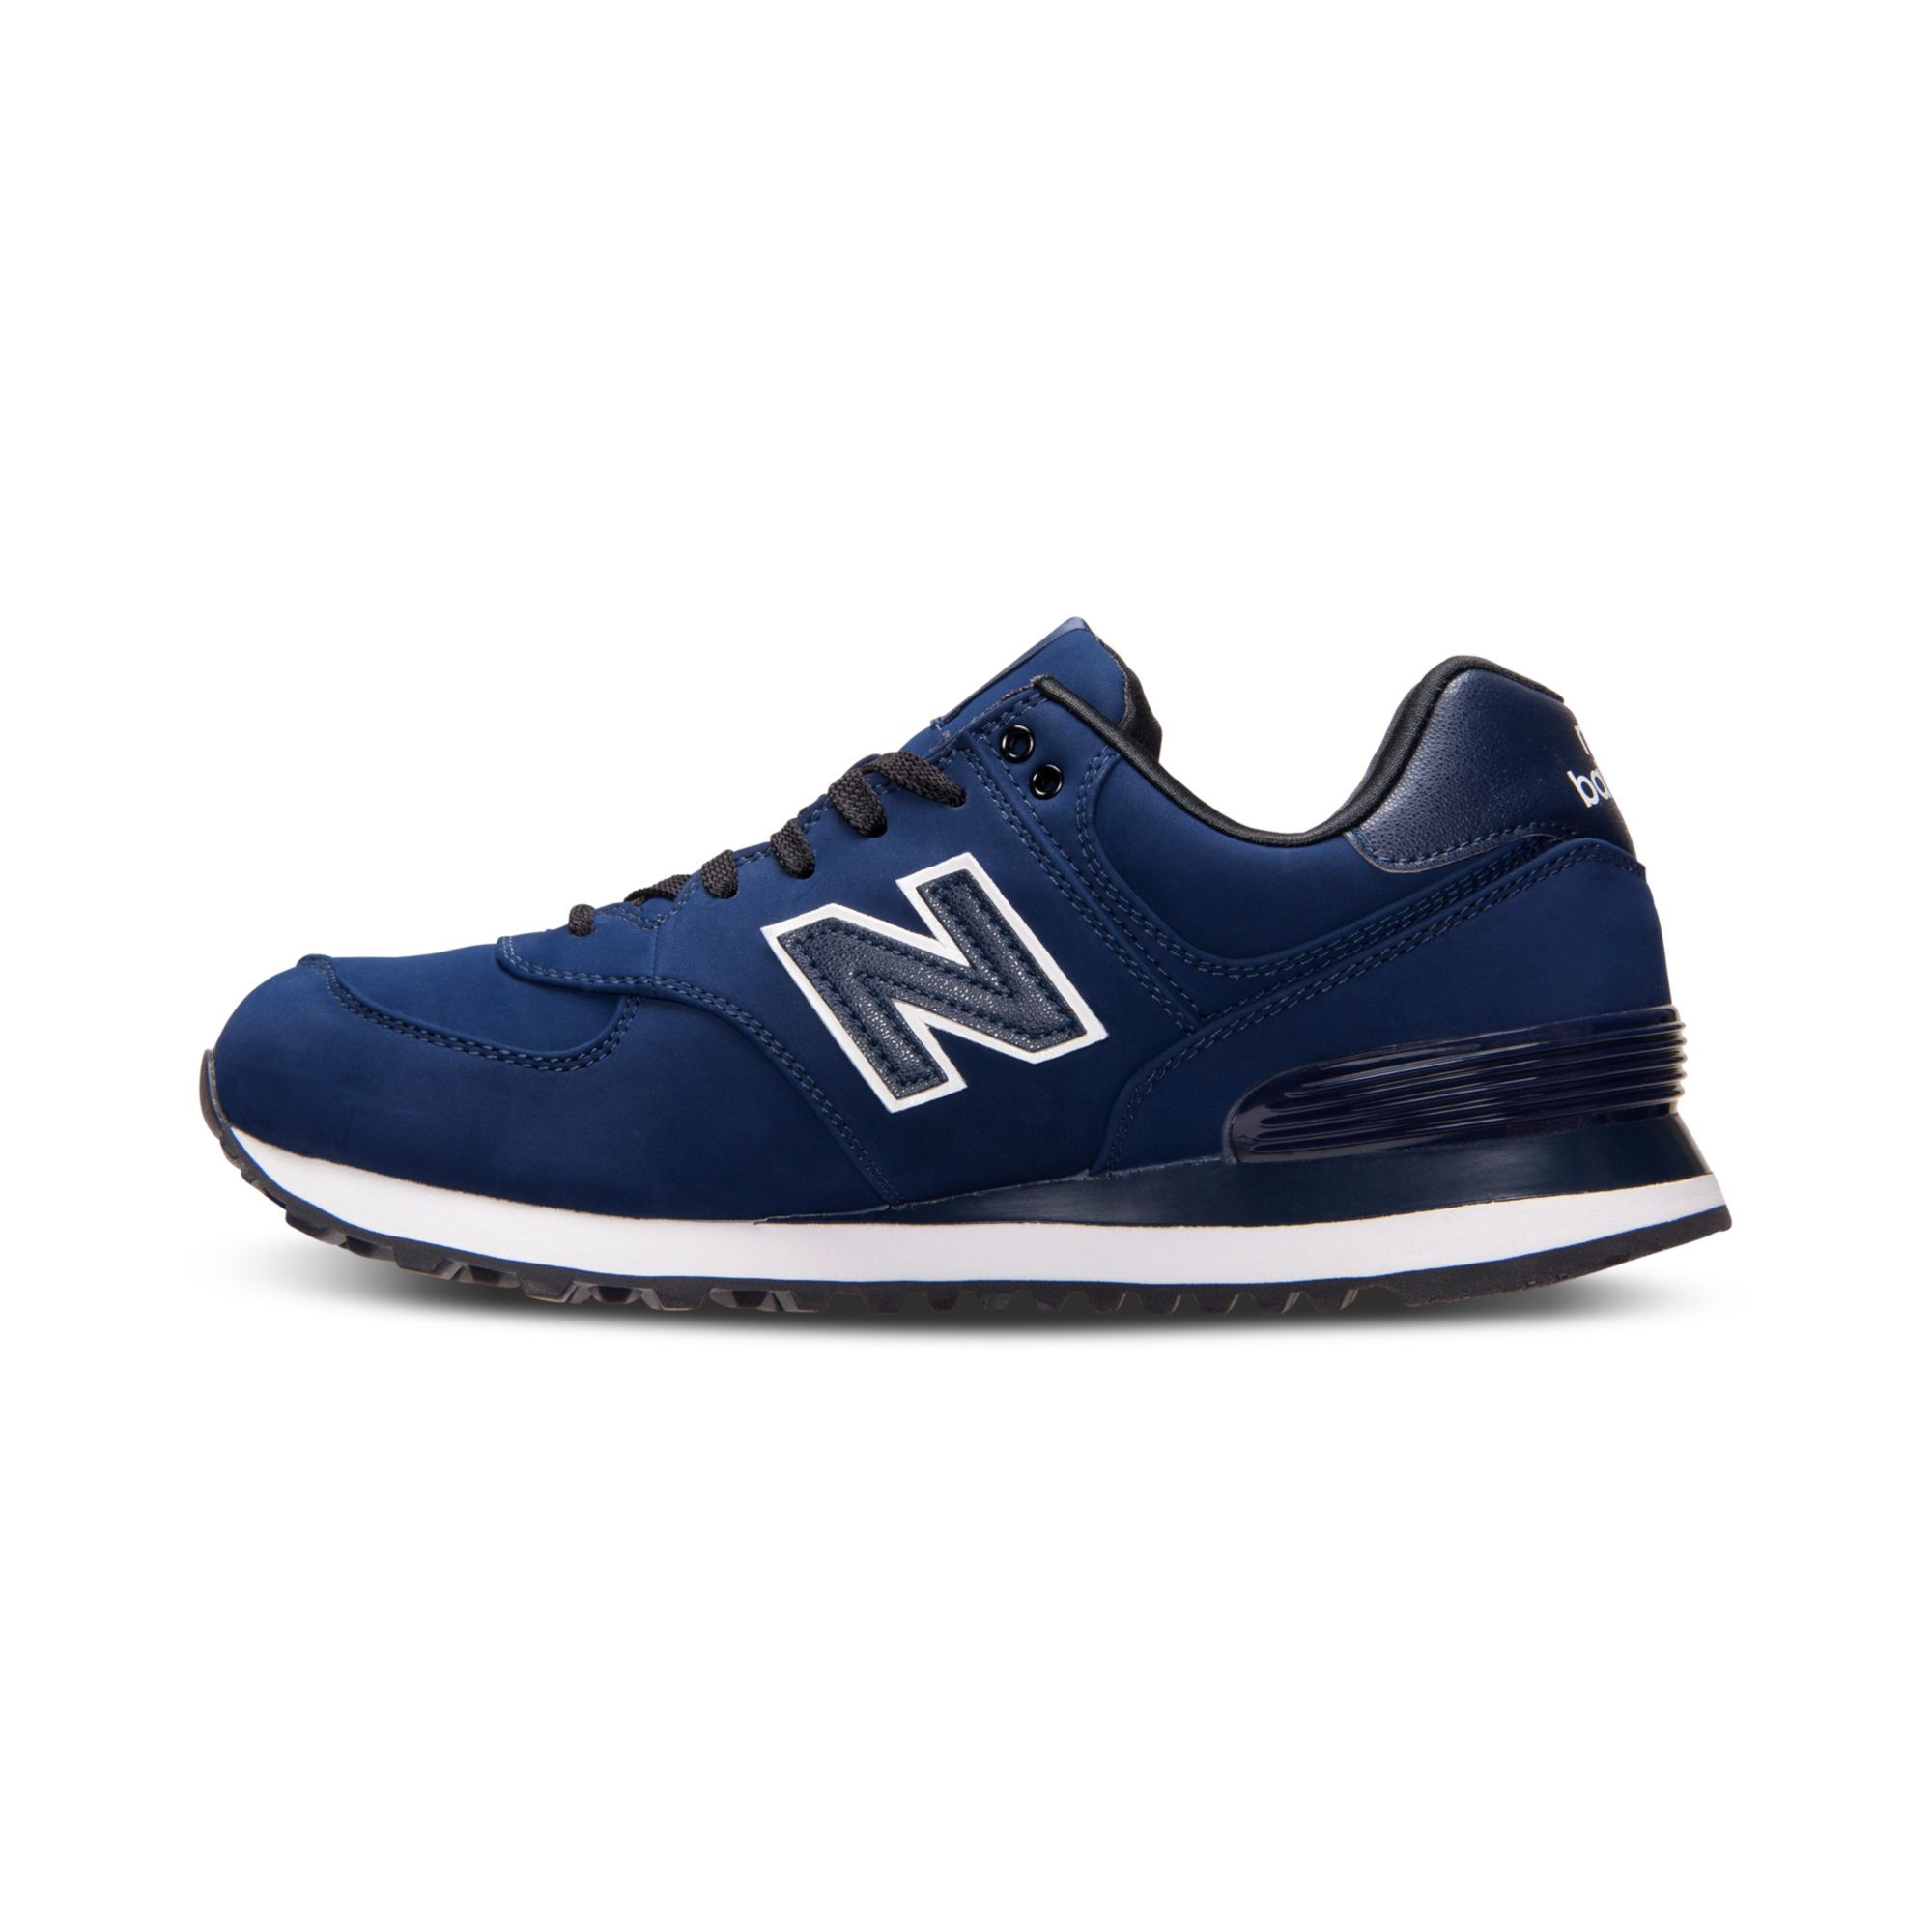 New balance 574 Casual Sneakers in Blue for Men